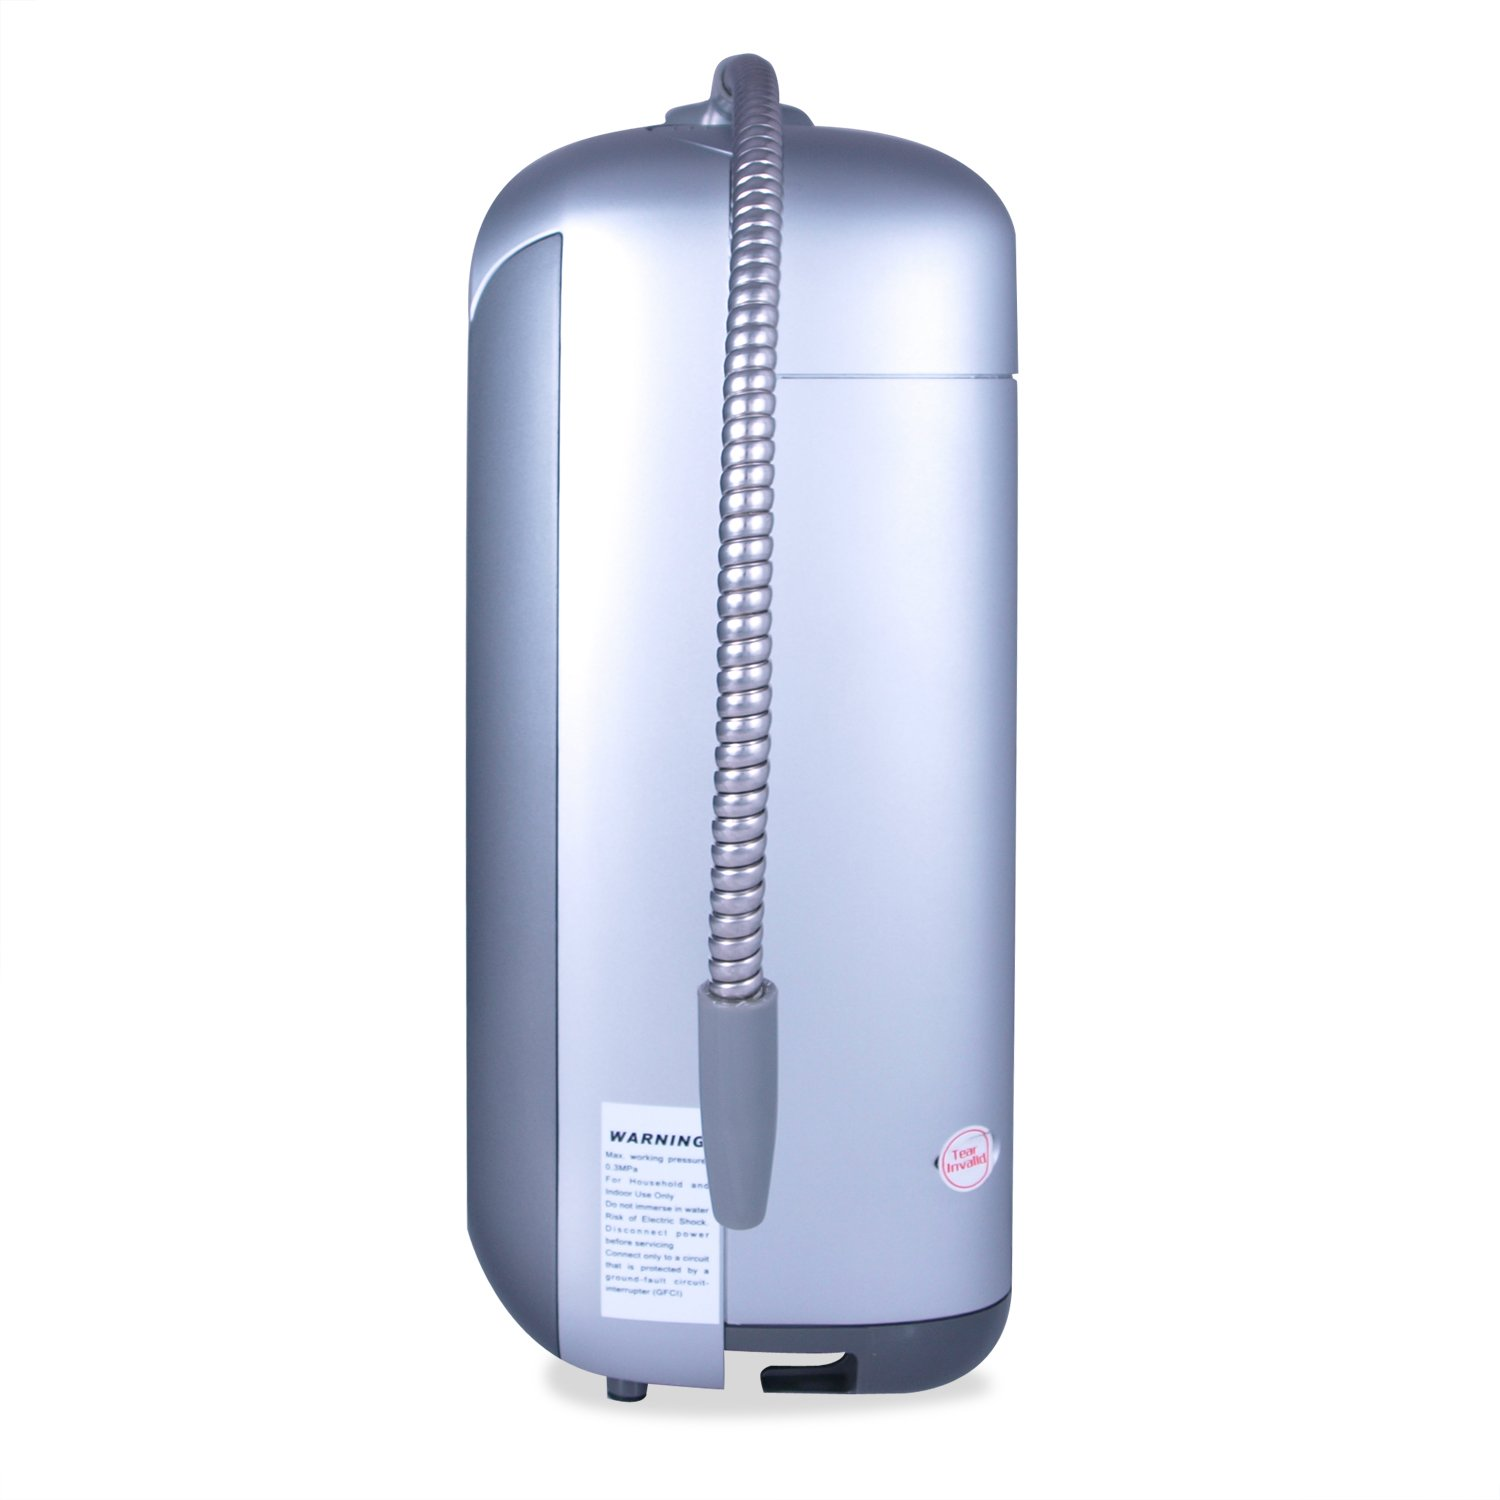 Air Water Life Aqua Ionizer Deluxe 5.0   Best Home Alkaline Water Filtration System   Produces pH 5.0-11.0 Alkaline Water   Up to -600mV ORP   4000 Liters Per Filter   7 Water Settings by Air Water Life (Image #4)